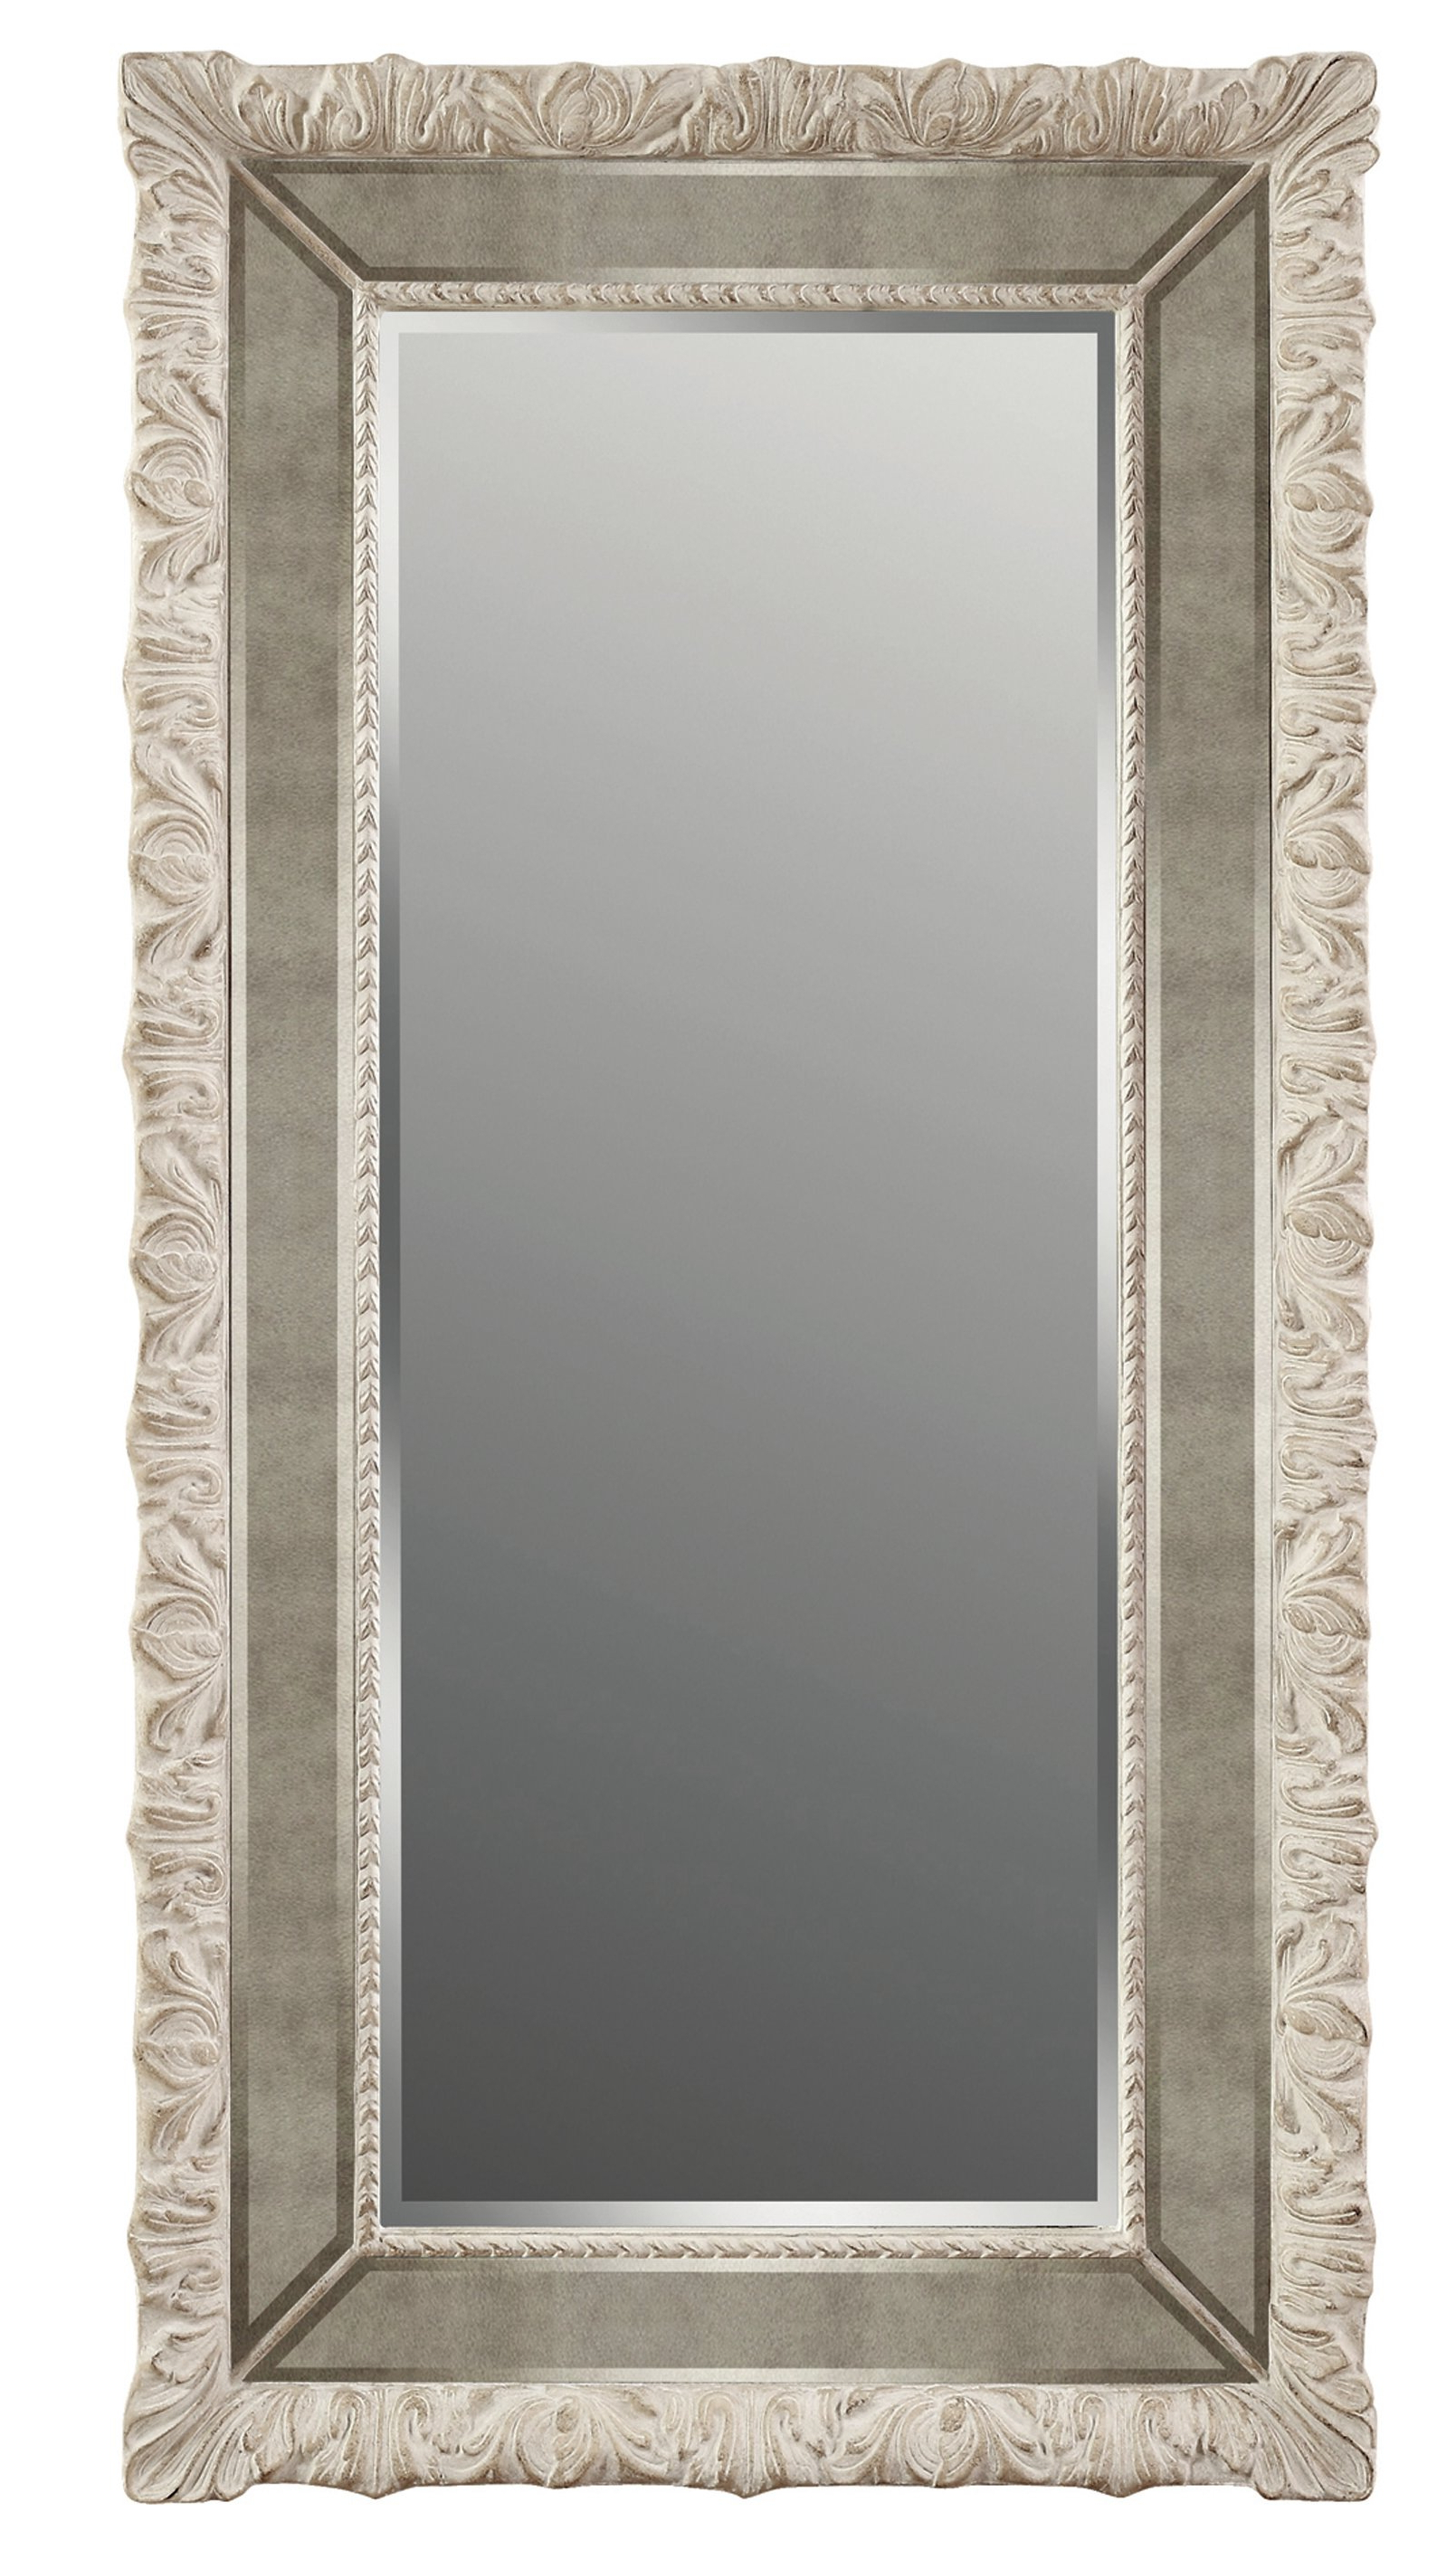 Gloria Full Length Floor Mirror Inside Fashionable Decorative Full Length Wall Mirrors (View 7 of 20)